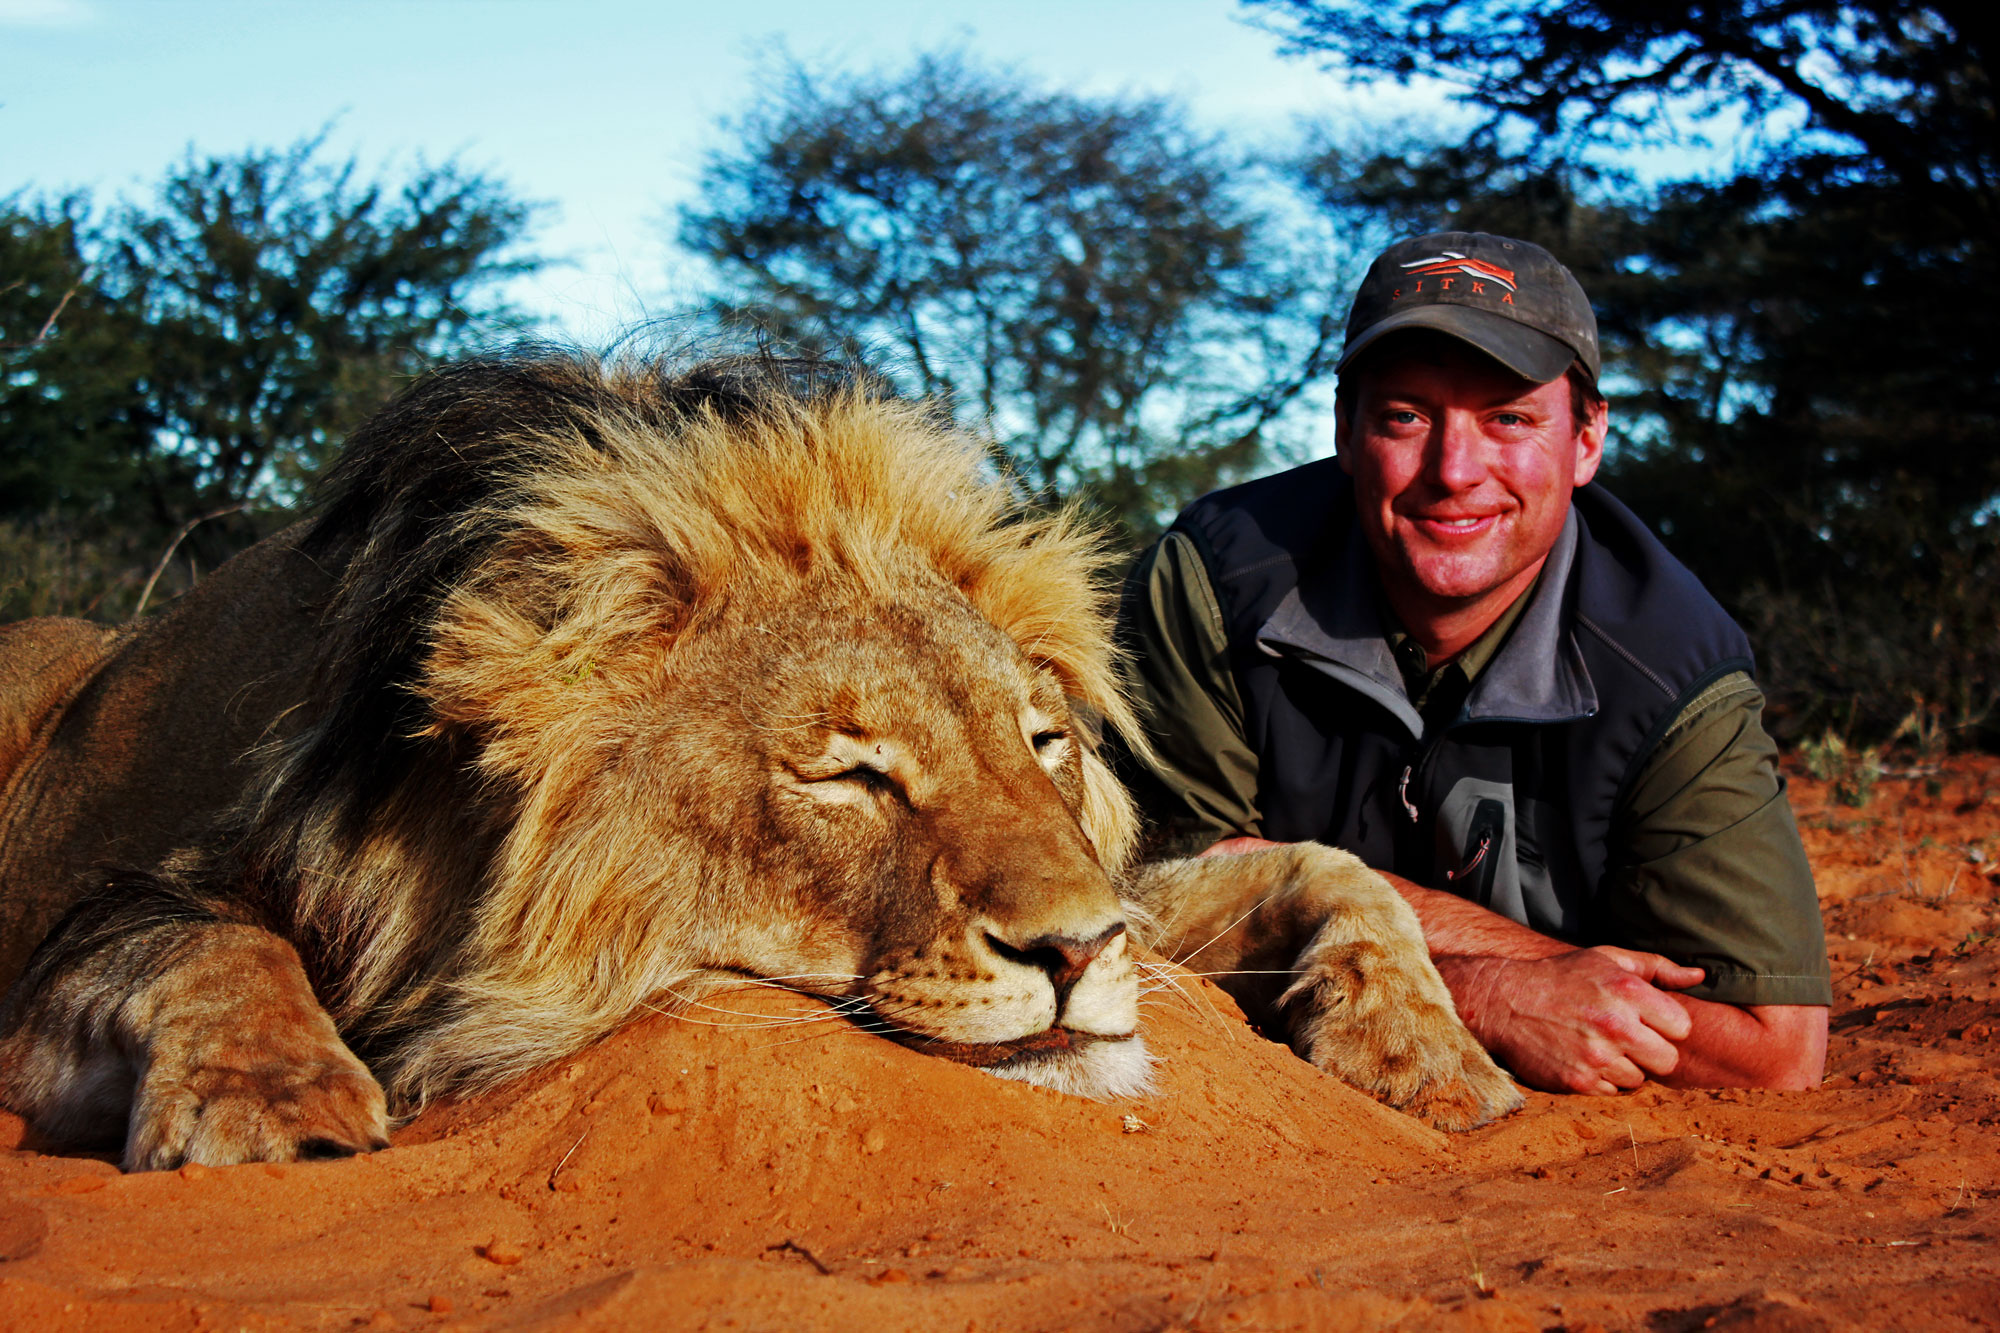 Hunting category 2 lions in South Africa